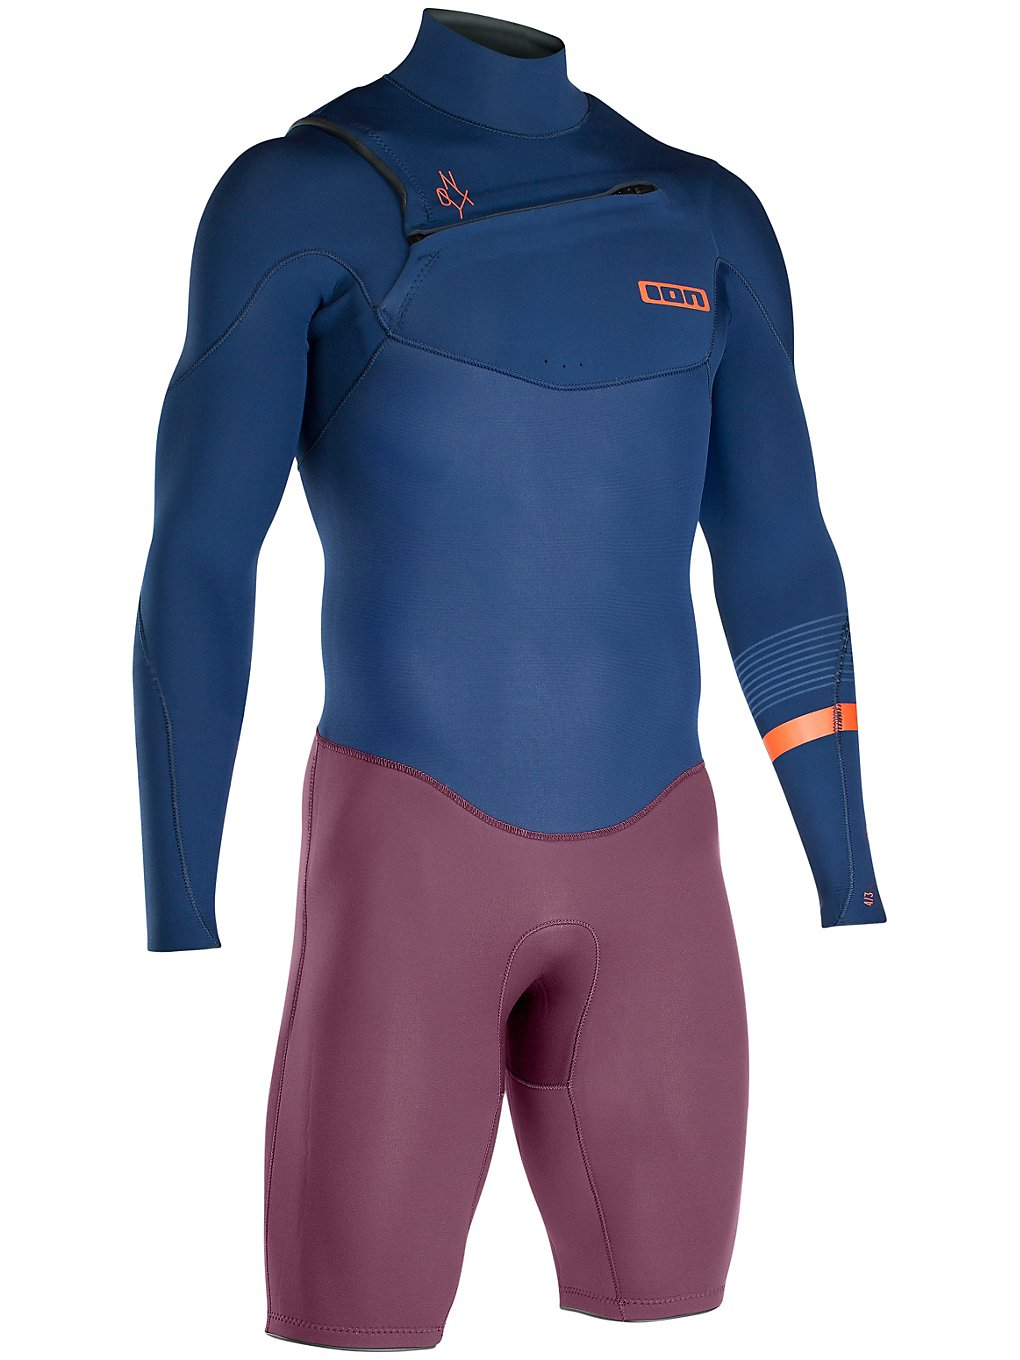 Ion Onyx Shorty LS 2.5 Wetsuit